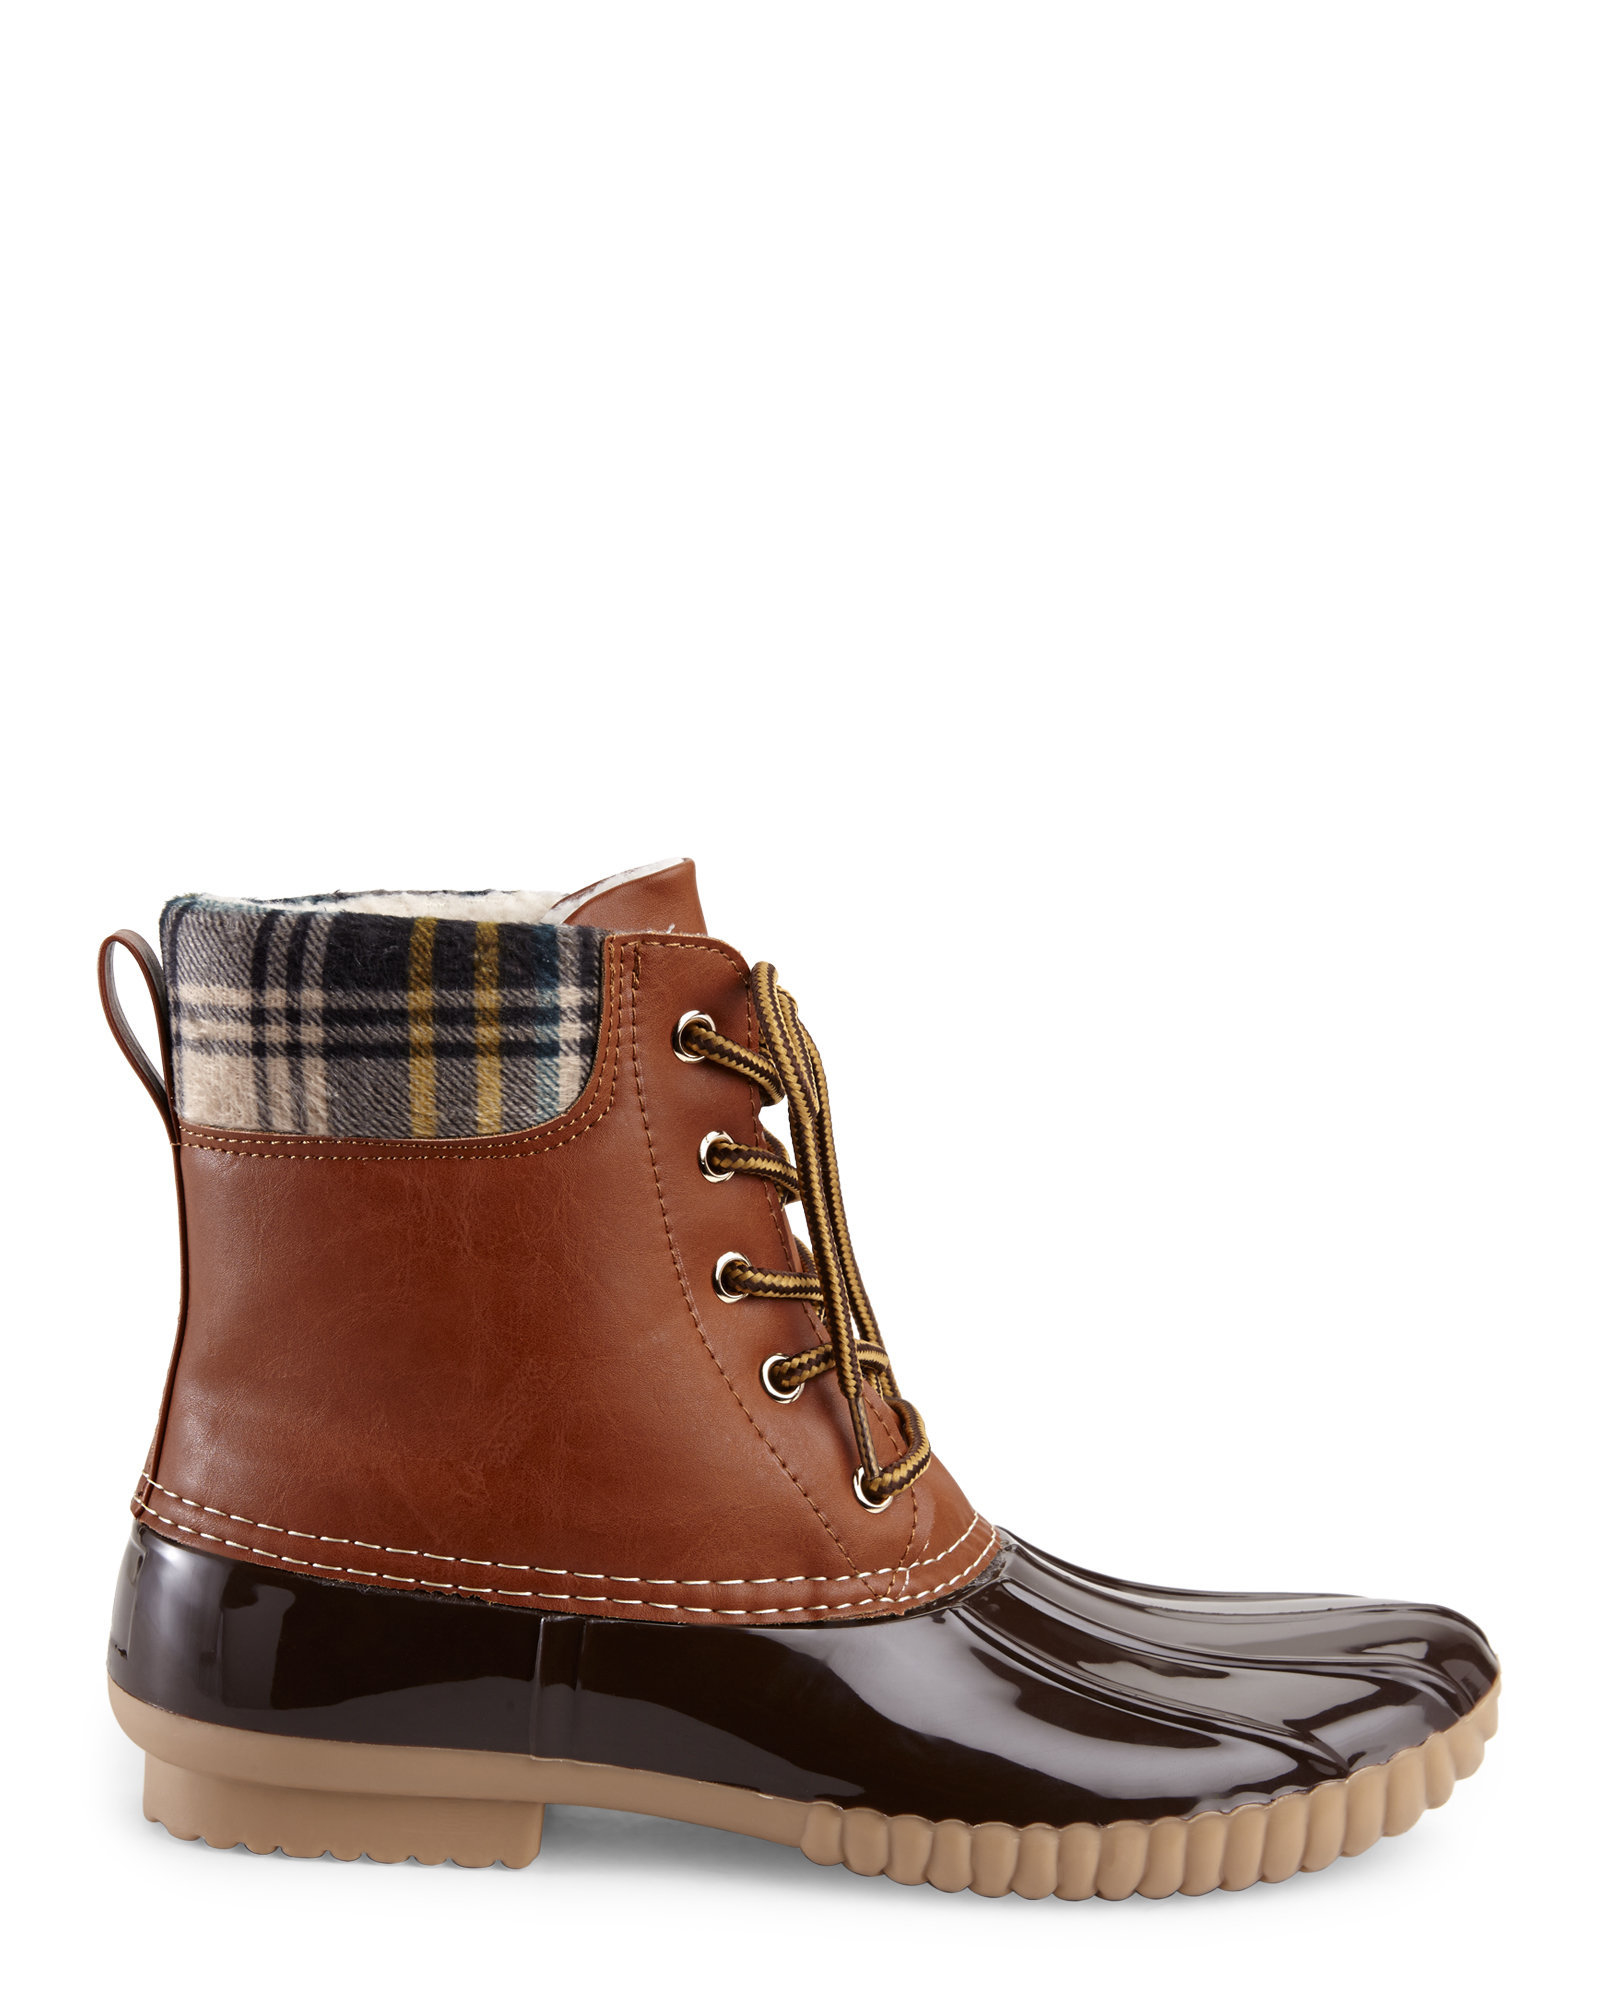 Boot Boot Black Sider Chukka Avenue Men's Duck Sperry Amaretto Top General Information Business Search. Matte adidas Gold Shoe Trainer Black Men's Leistung Black Core 16 Cross II Core qrzgqCw; Leather Pu Zipper Ankle Pointed Toe Suede Odema PU Men's Brown Chelsea Boots Buckle 4fqBRB.